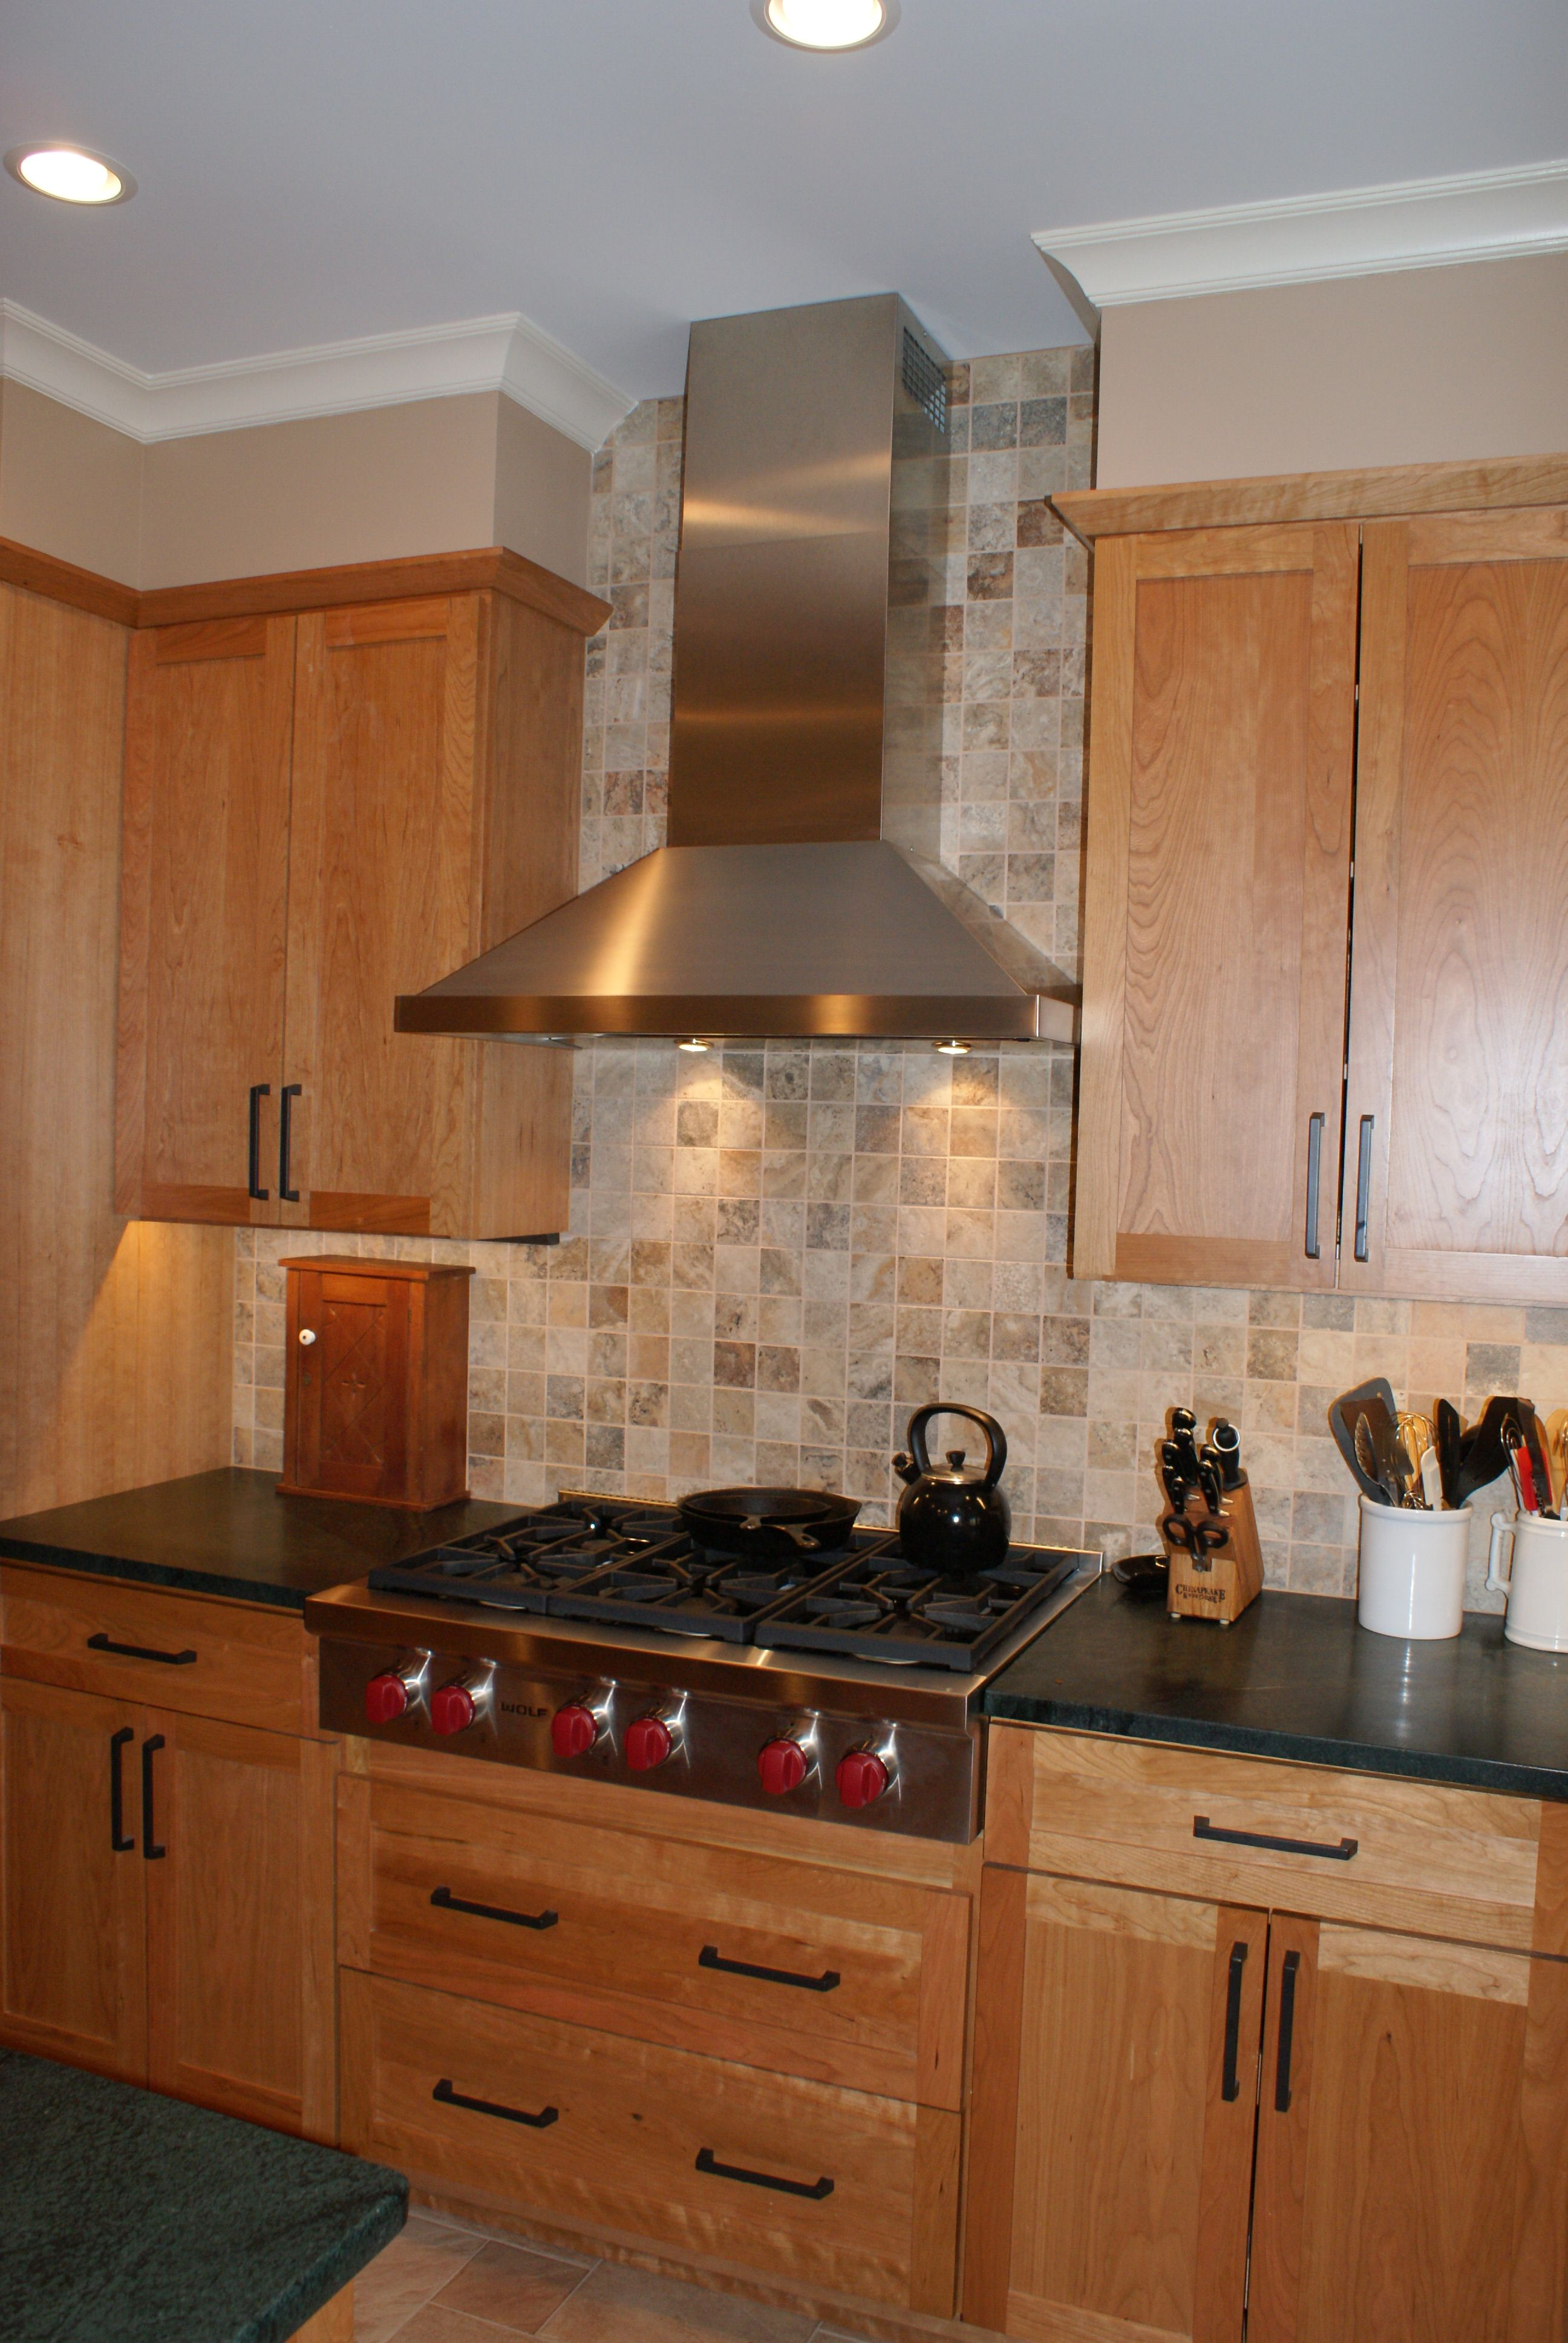 backsplash tile to ceiling behind range hood kitchens in 2019 rh pinterest com